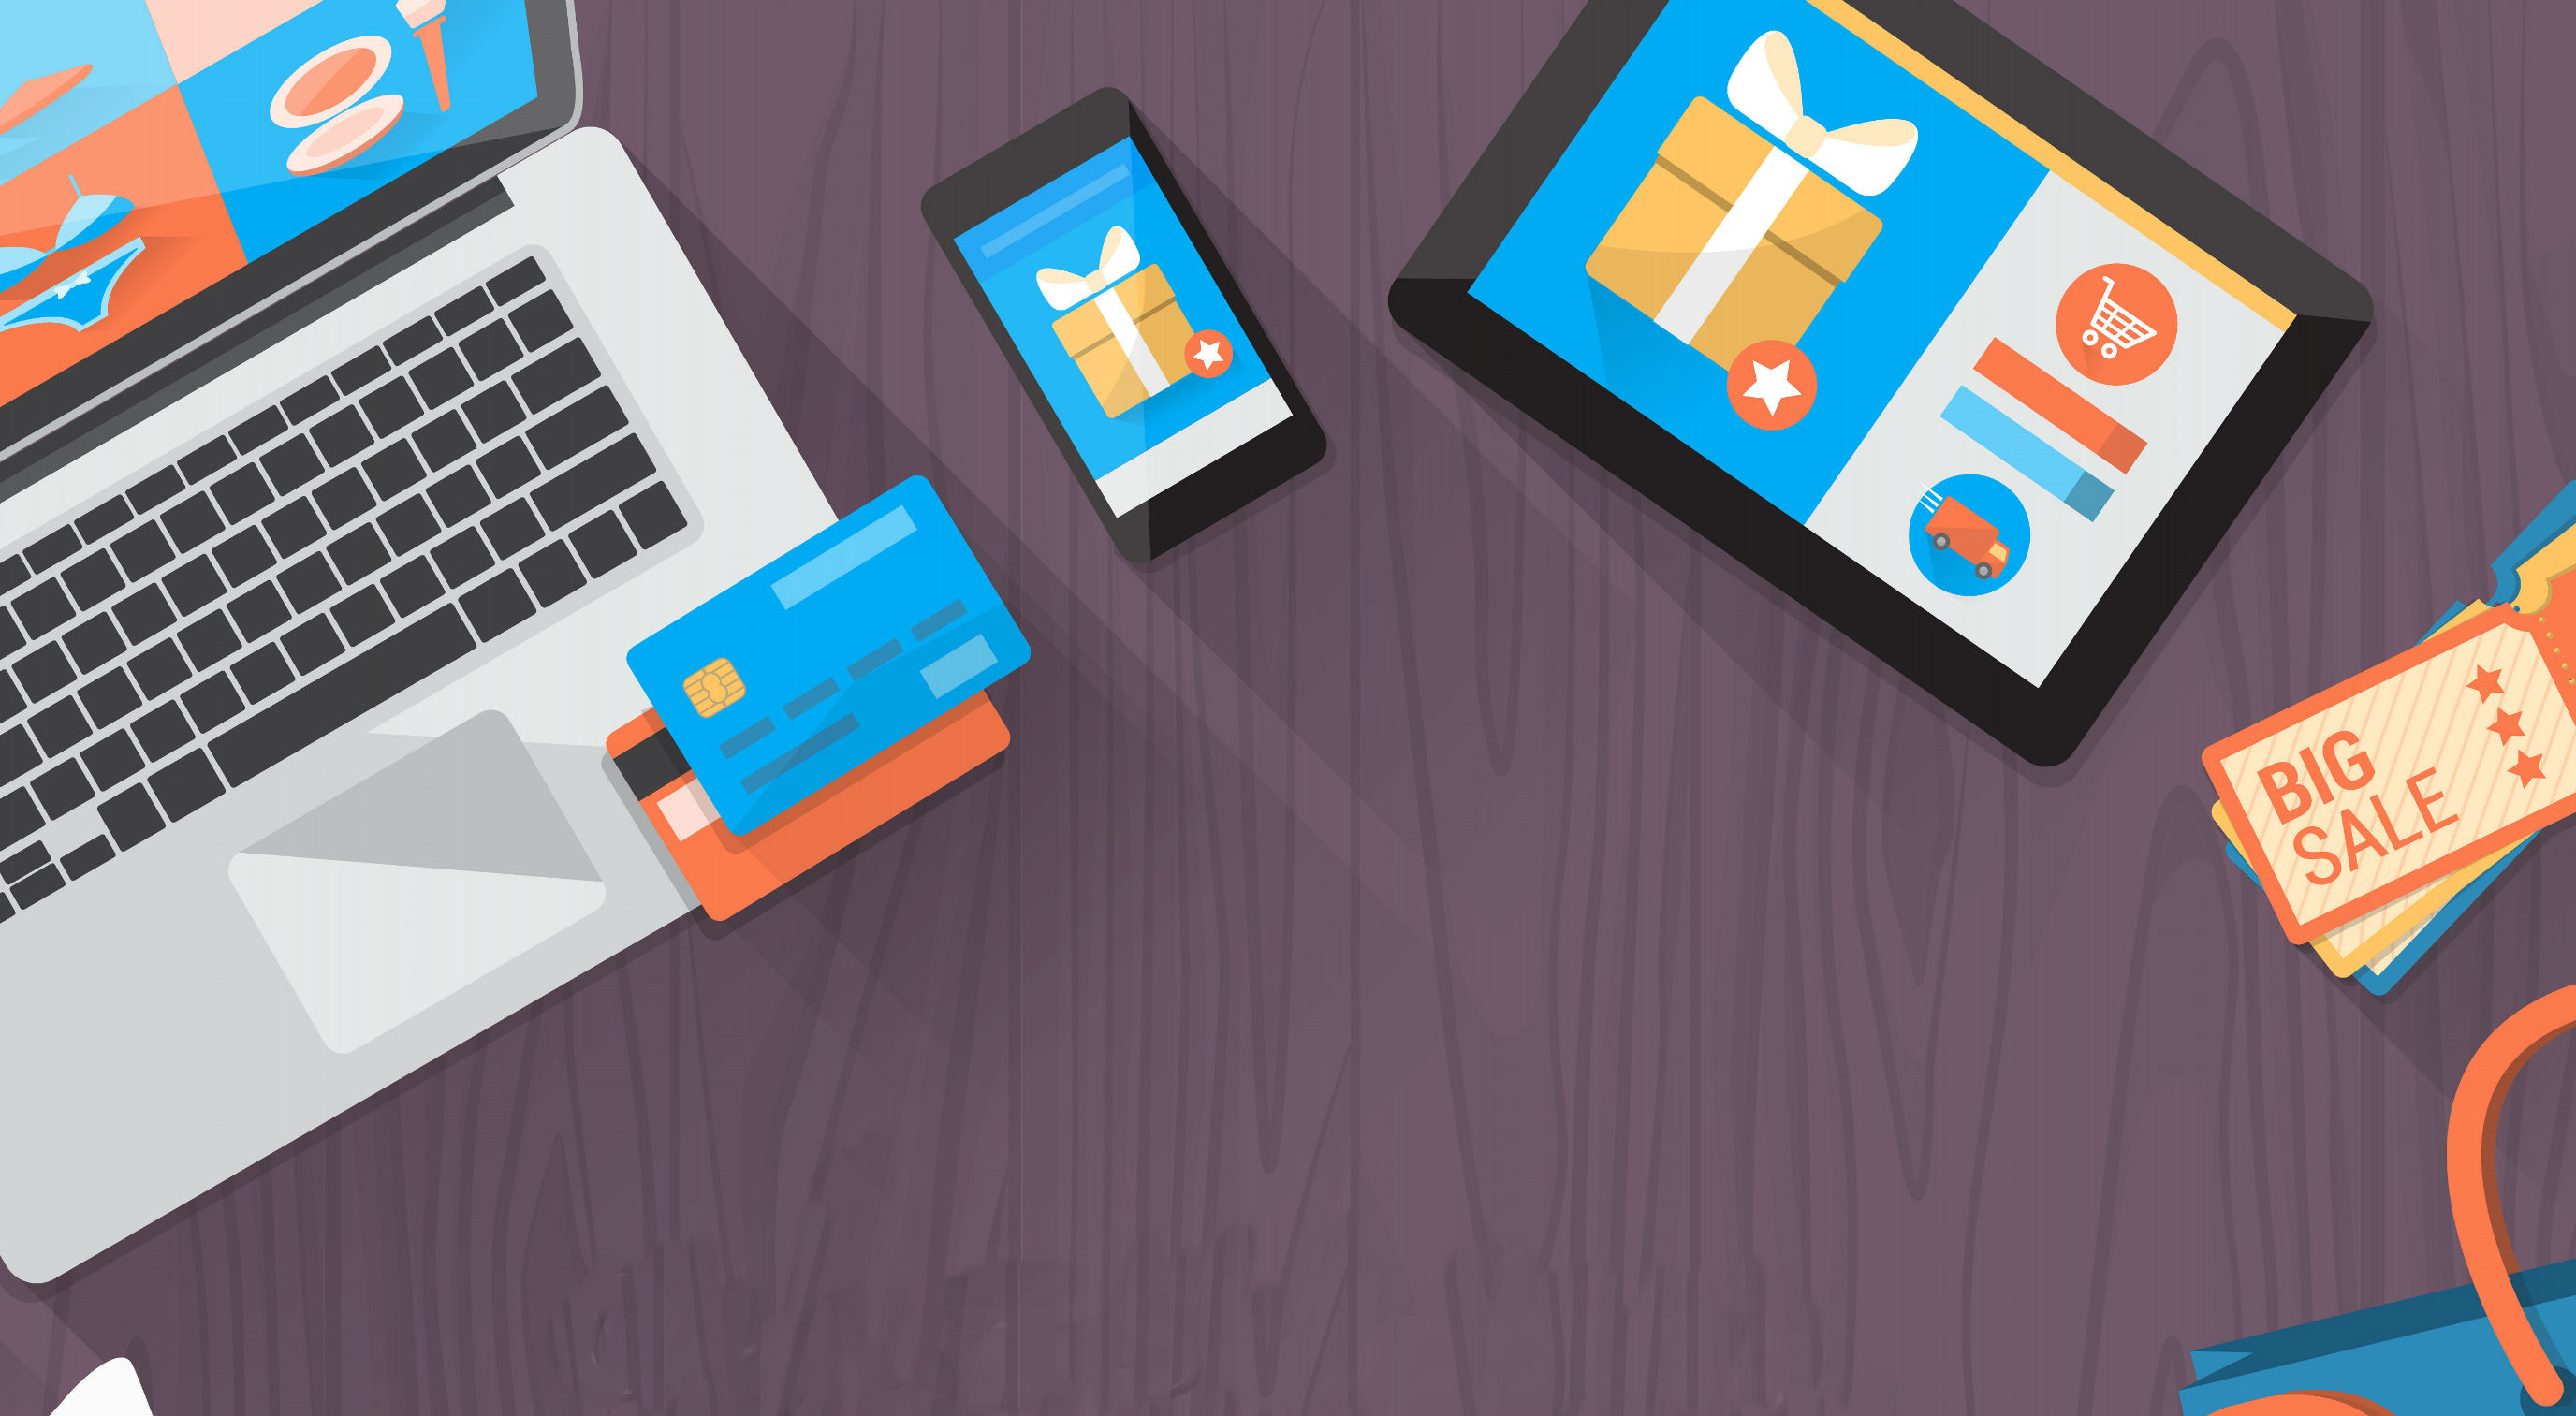 Omni-channel retailing works says Harvard Business Review